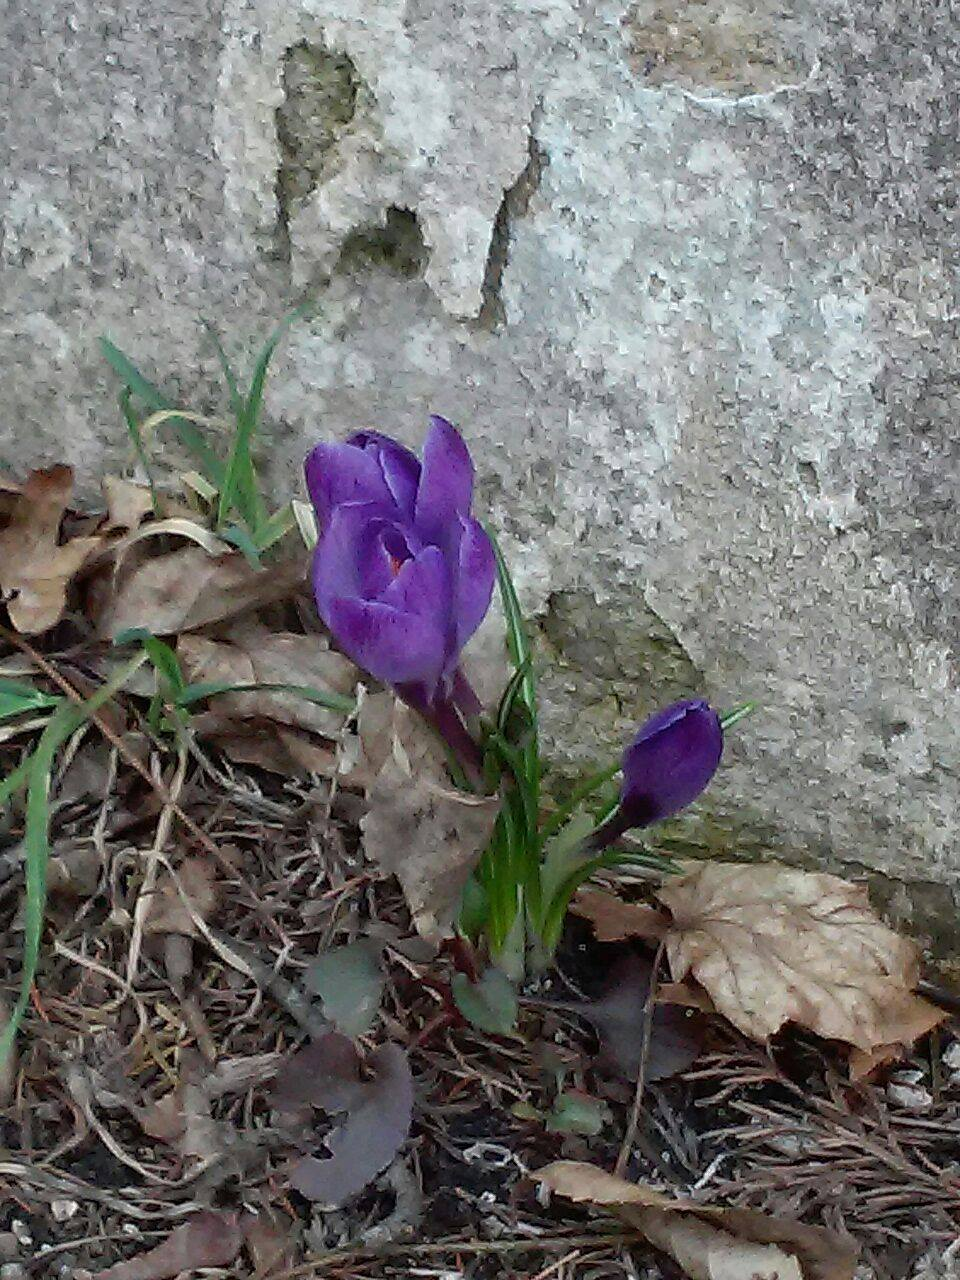 First spring flowers of the season, a purple crocus.